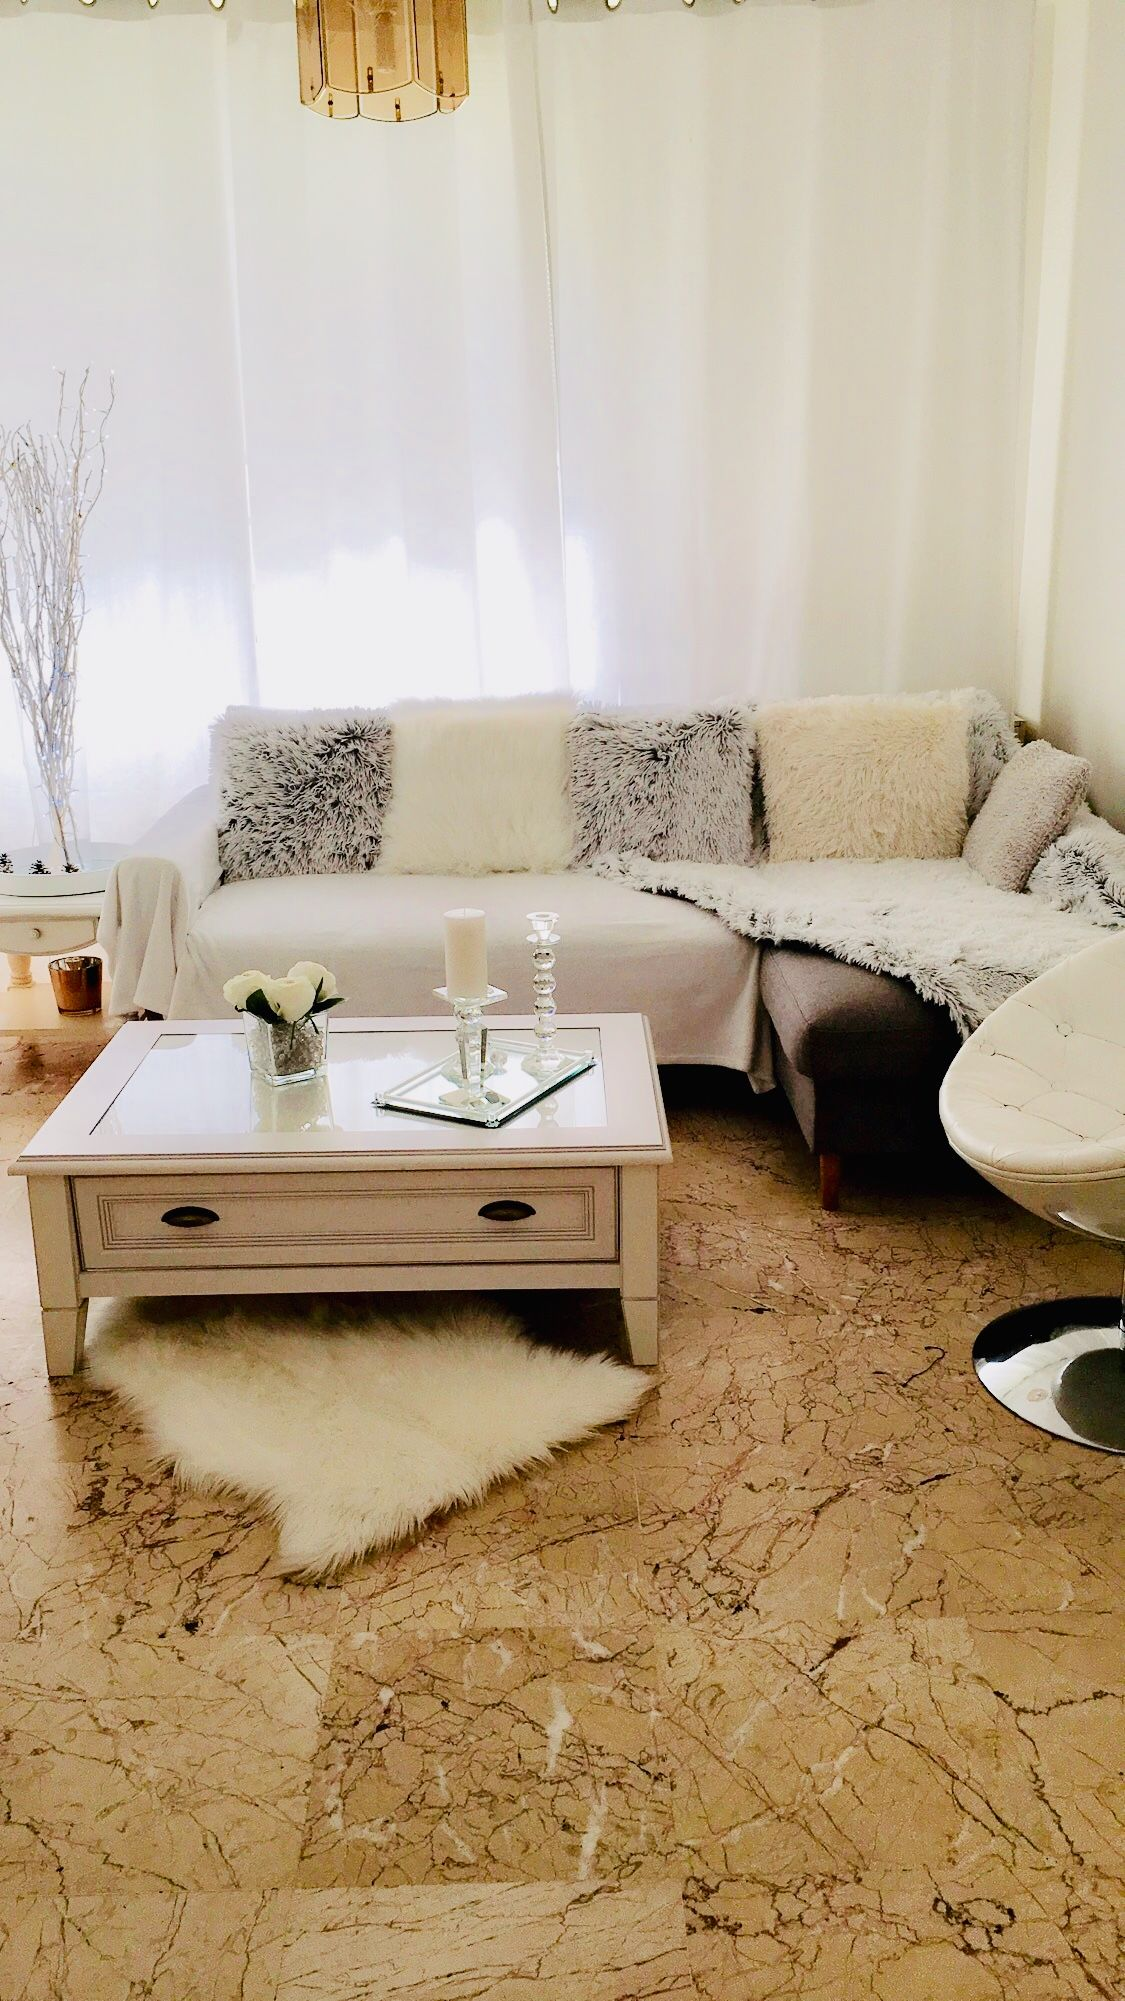 Epingle Par Akhona Magazi Sur Lounges Decoration Interieure